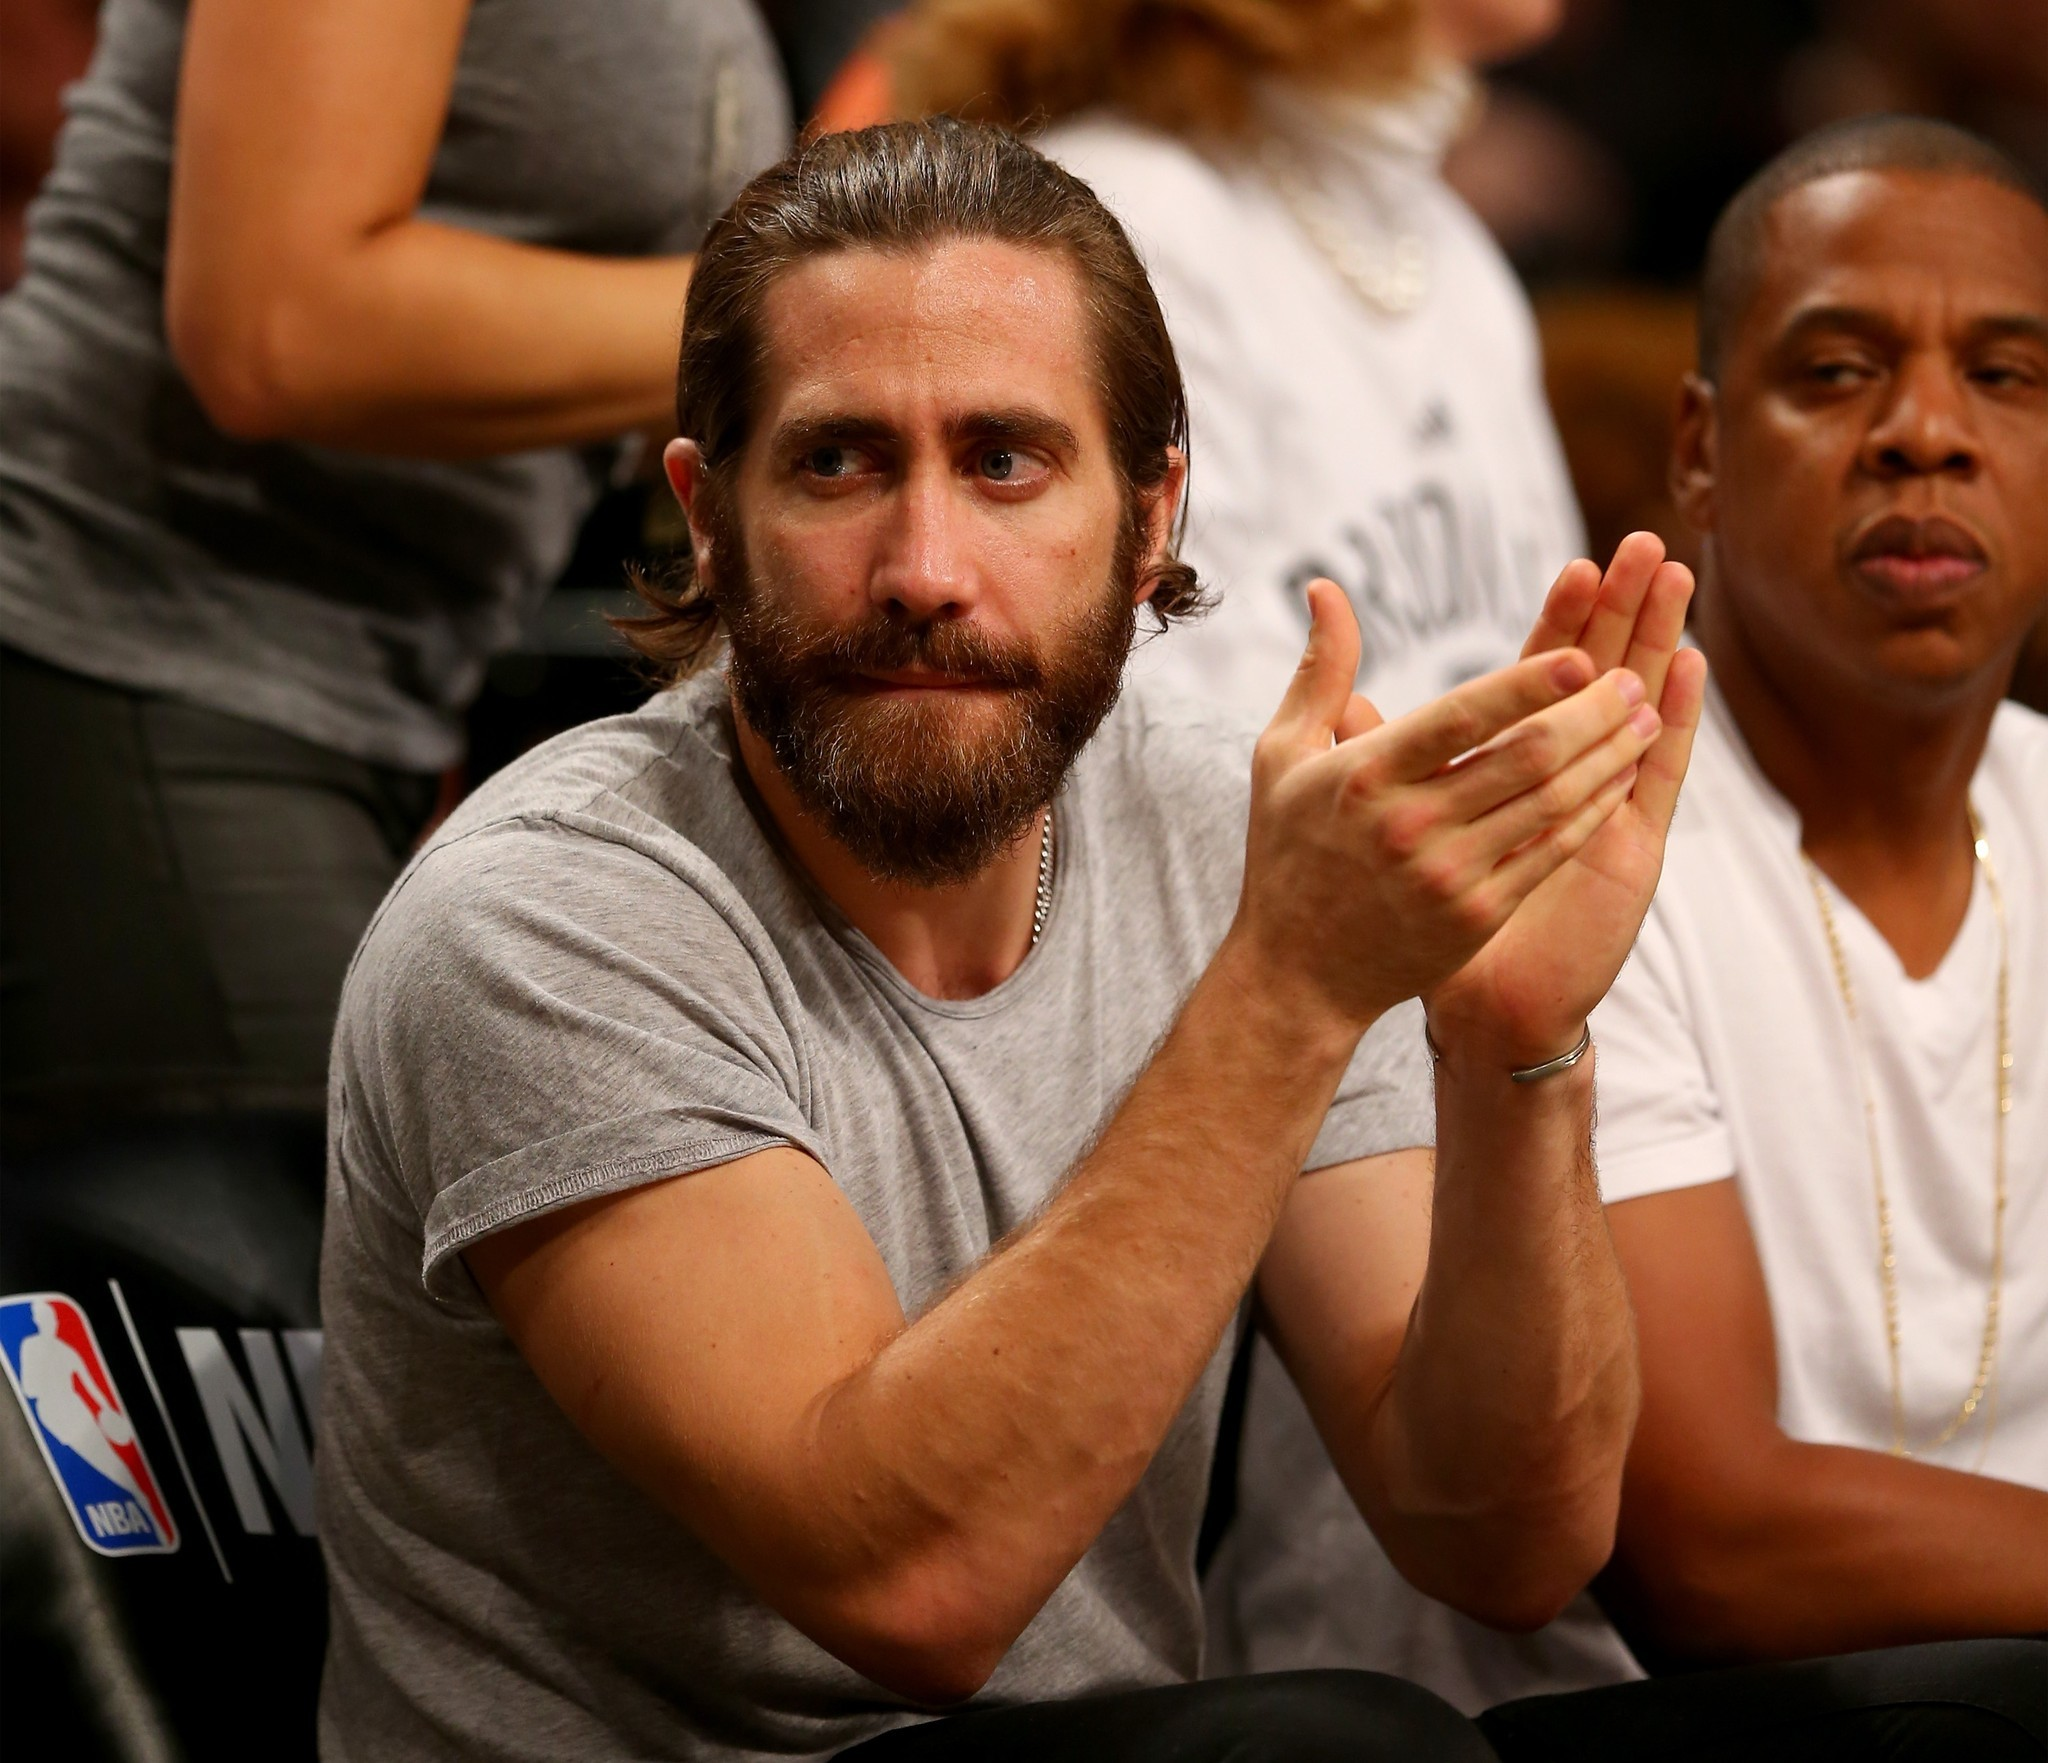 Celebs spotted at Miami Heat games - Jake Gyllenhall and Jay-Z